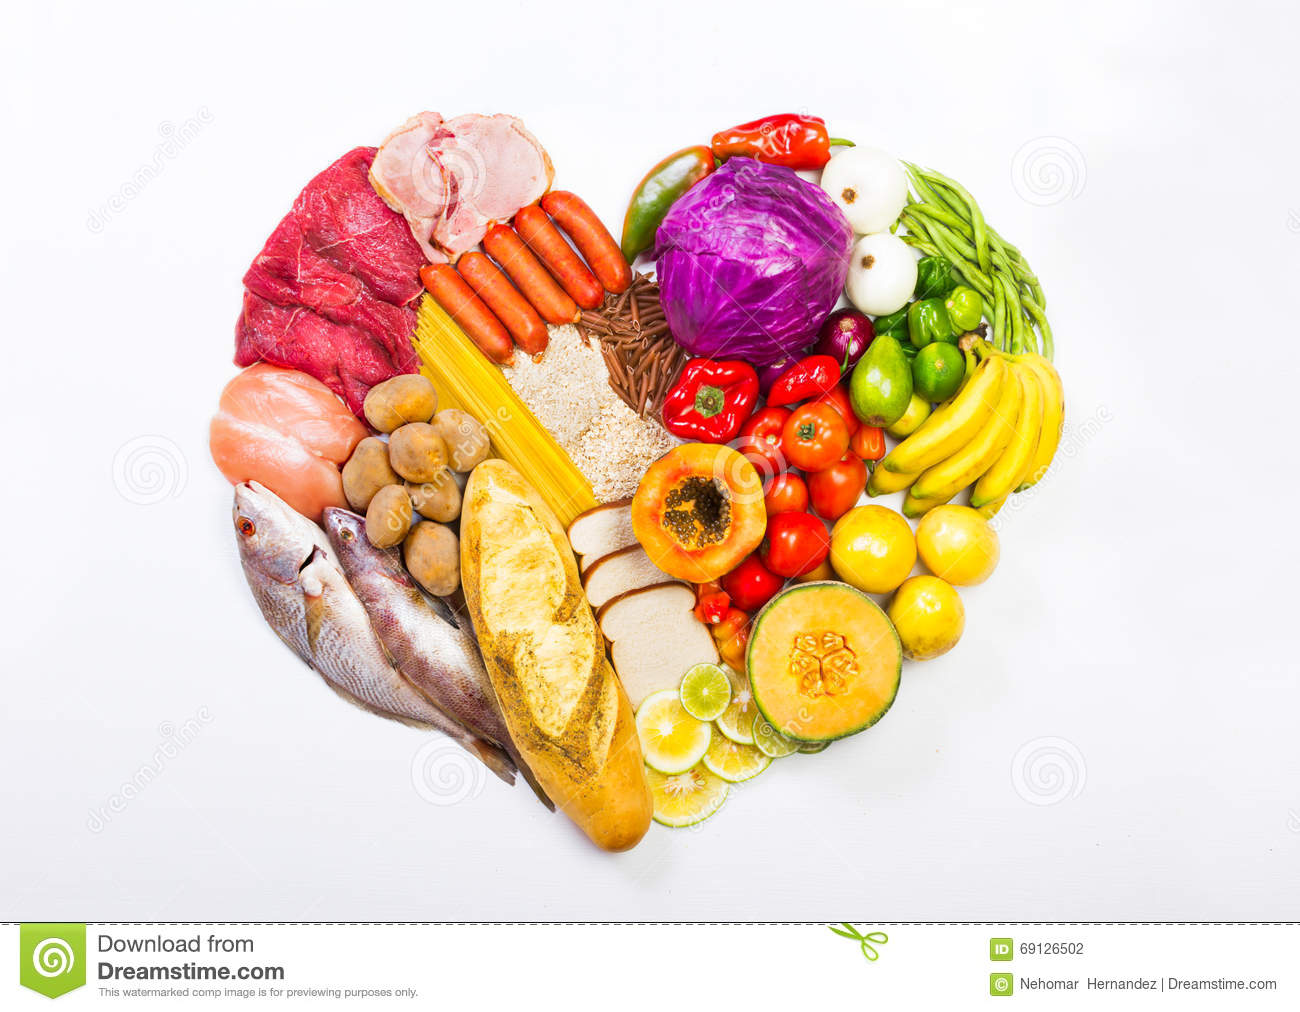 Heart shaped display of foods